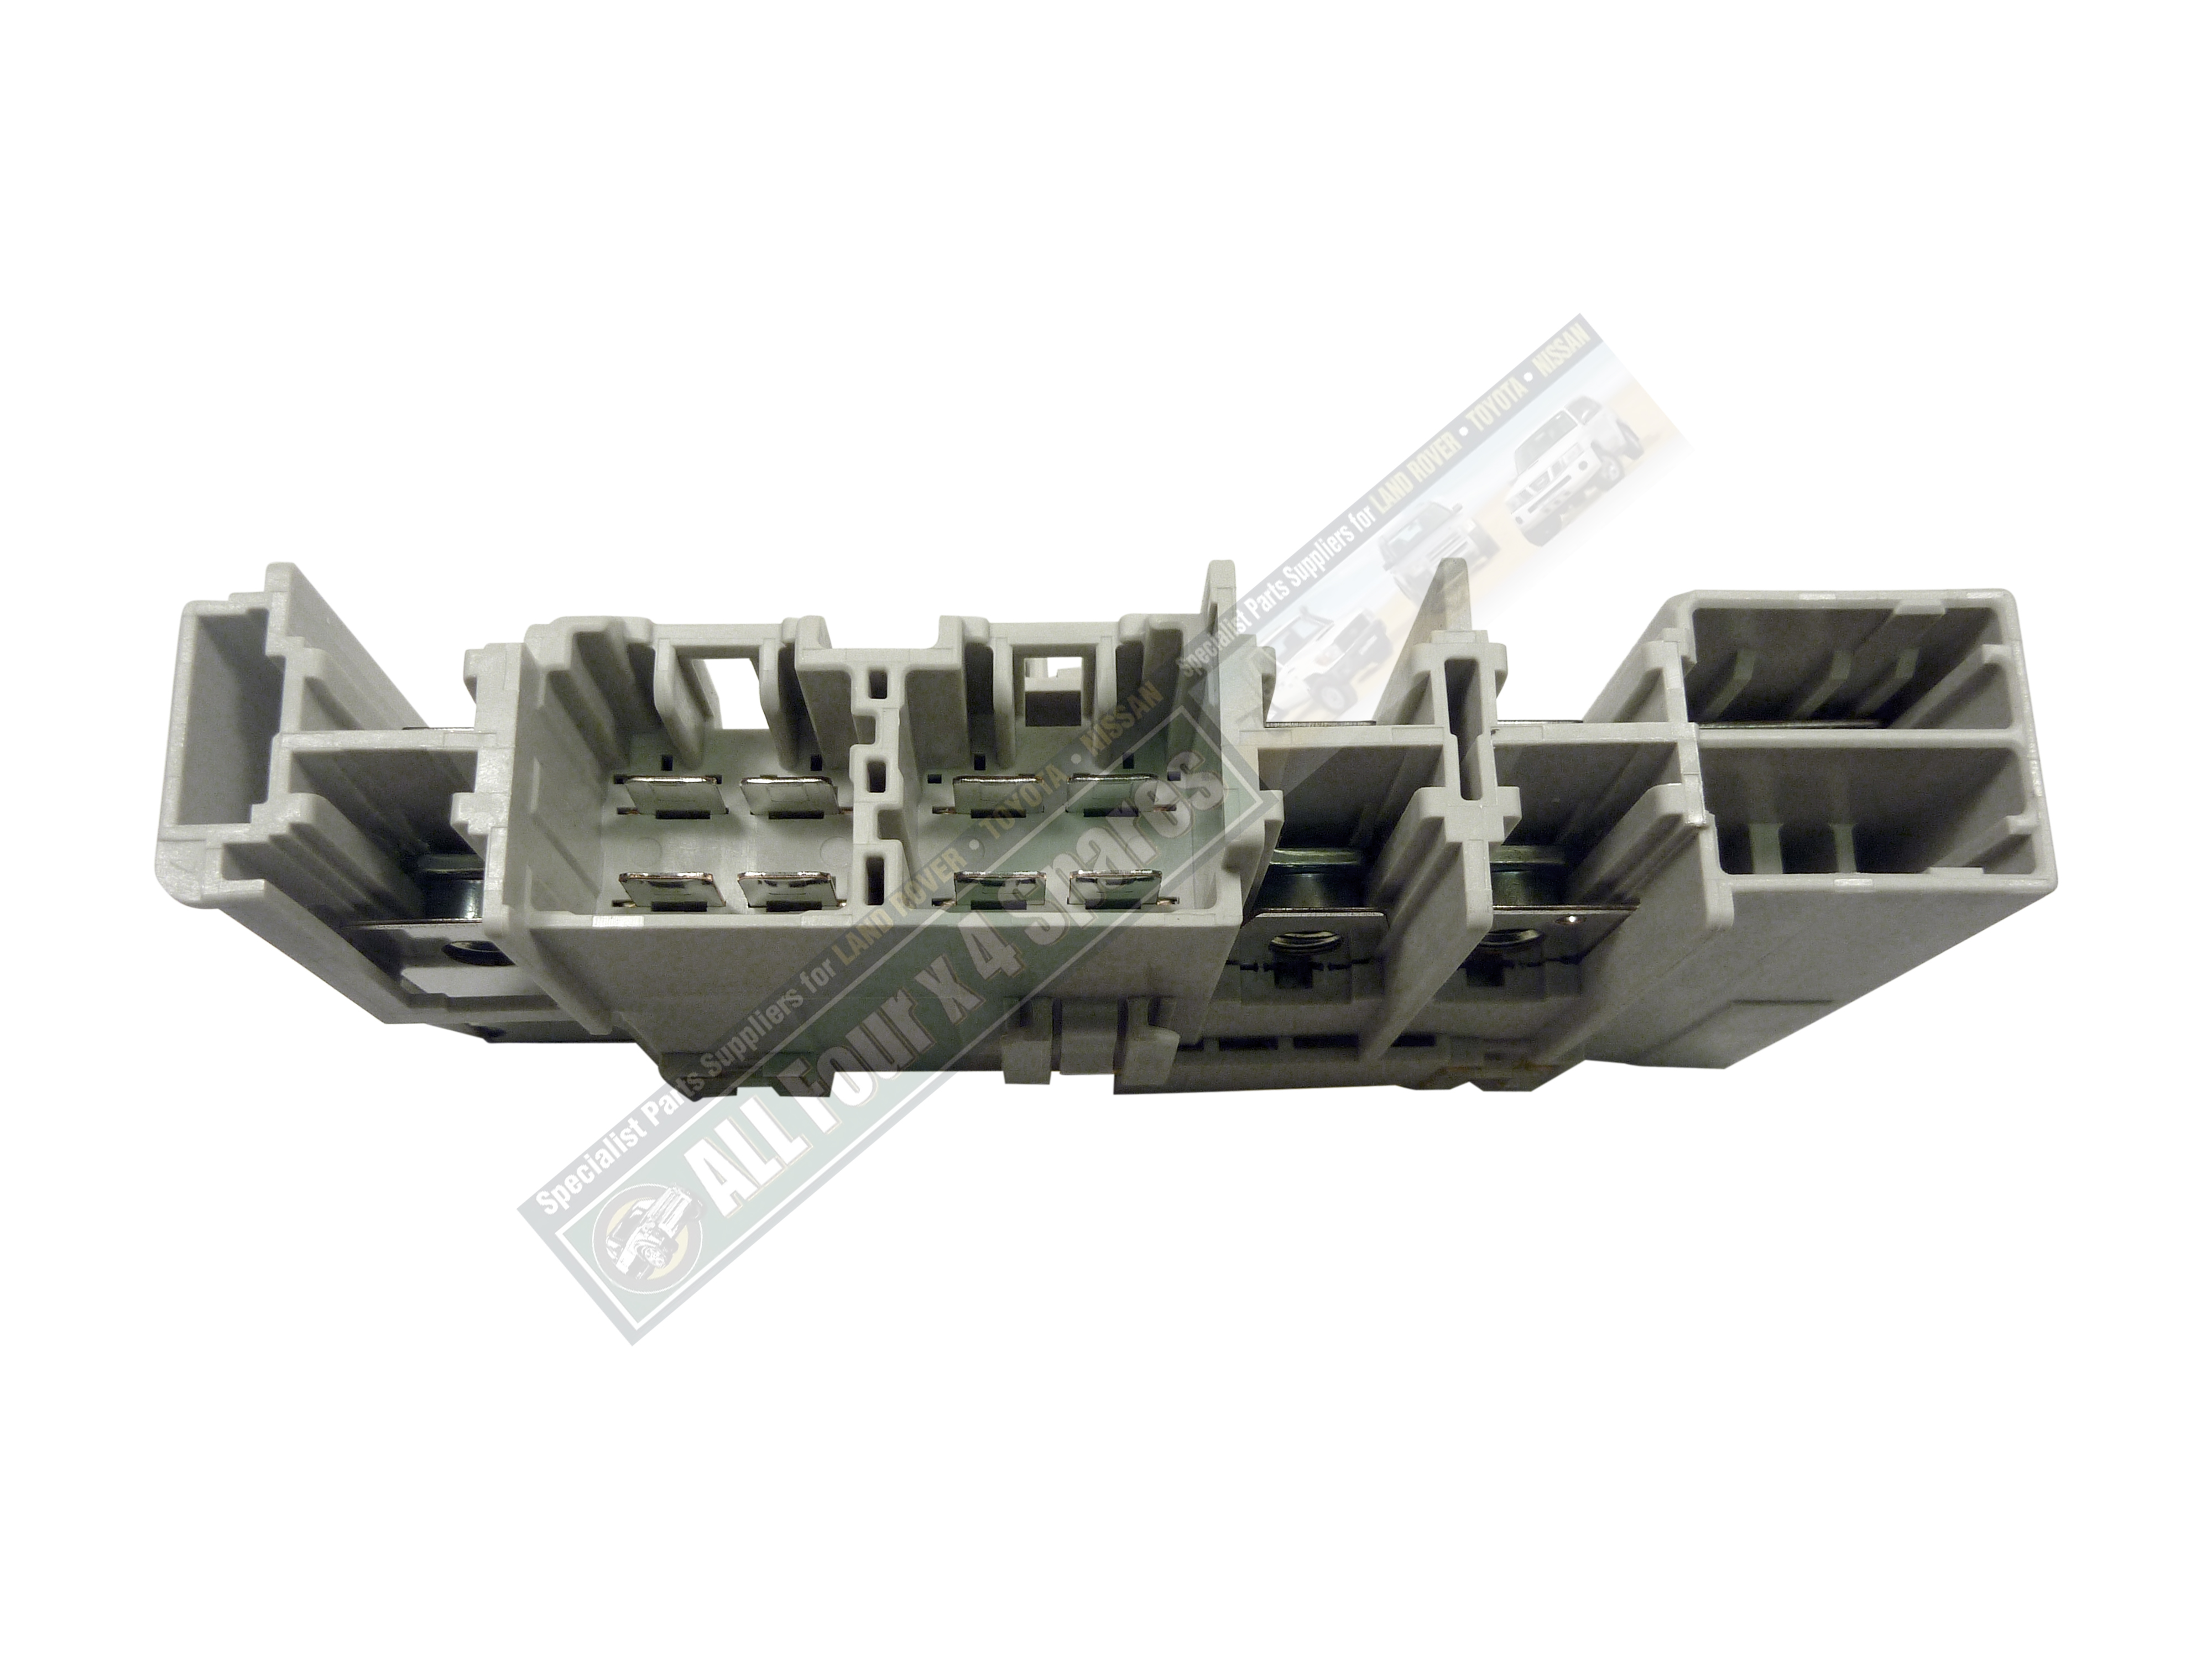 Fuse Fusible Link suitable for Hilux 2005-2008 KUN GGN TGN 4WD and 2WD